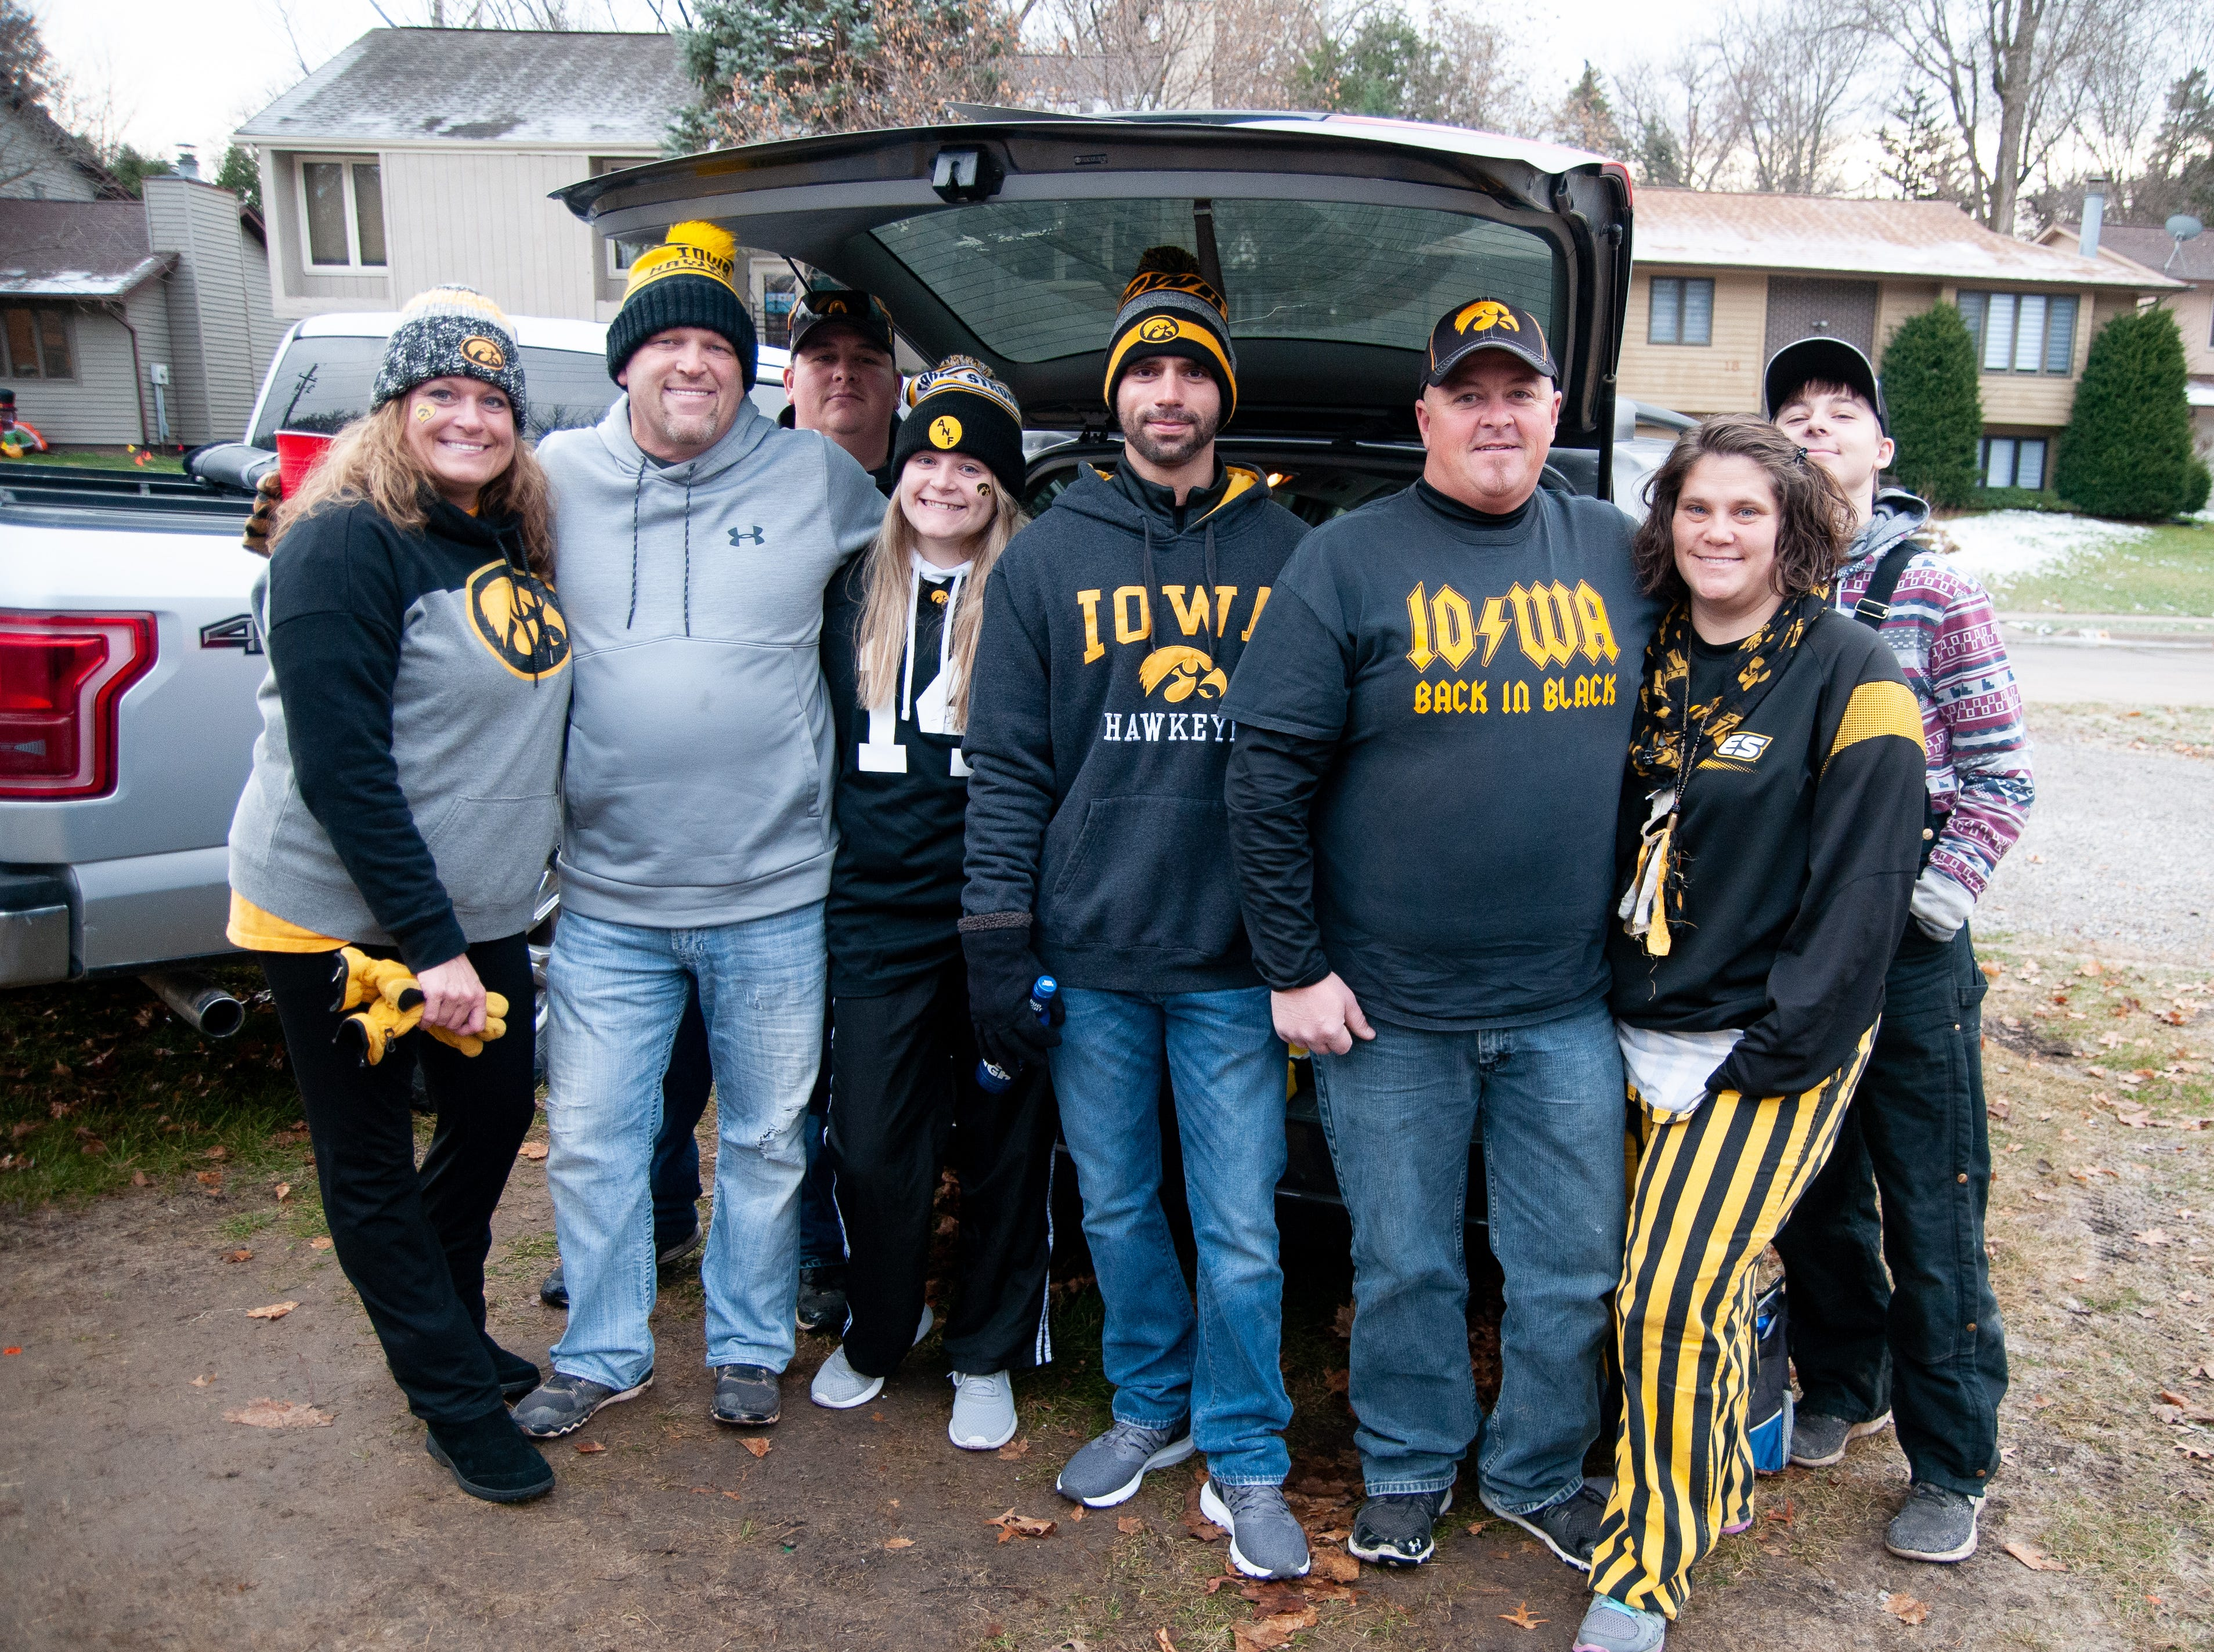 The Melrose and George Tailgate, of Marshalltown, Friday, Nov. 23, 2018, while tailgating before the Iowa game against Nebraska in Iowa City.